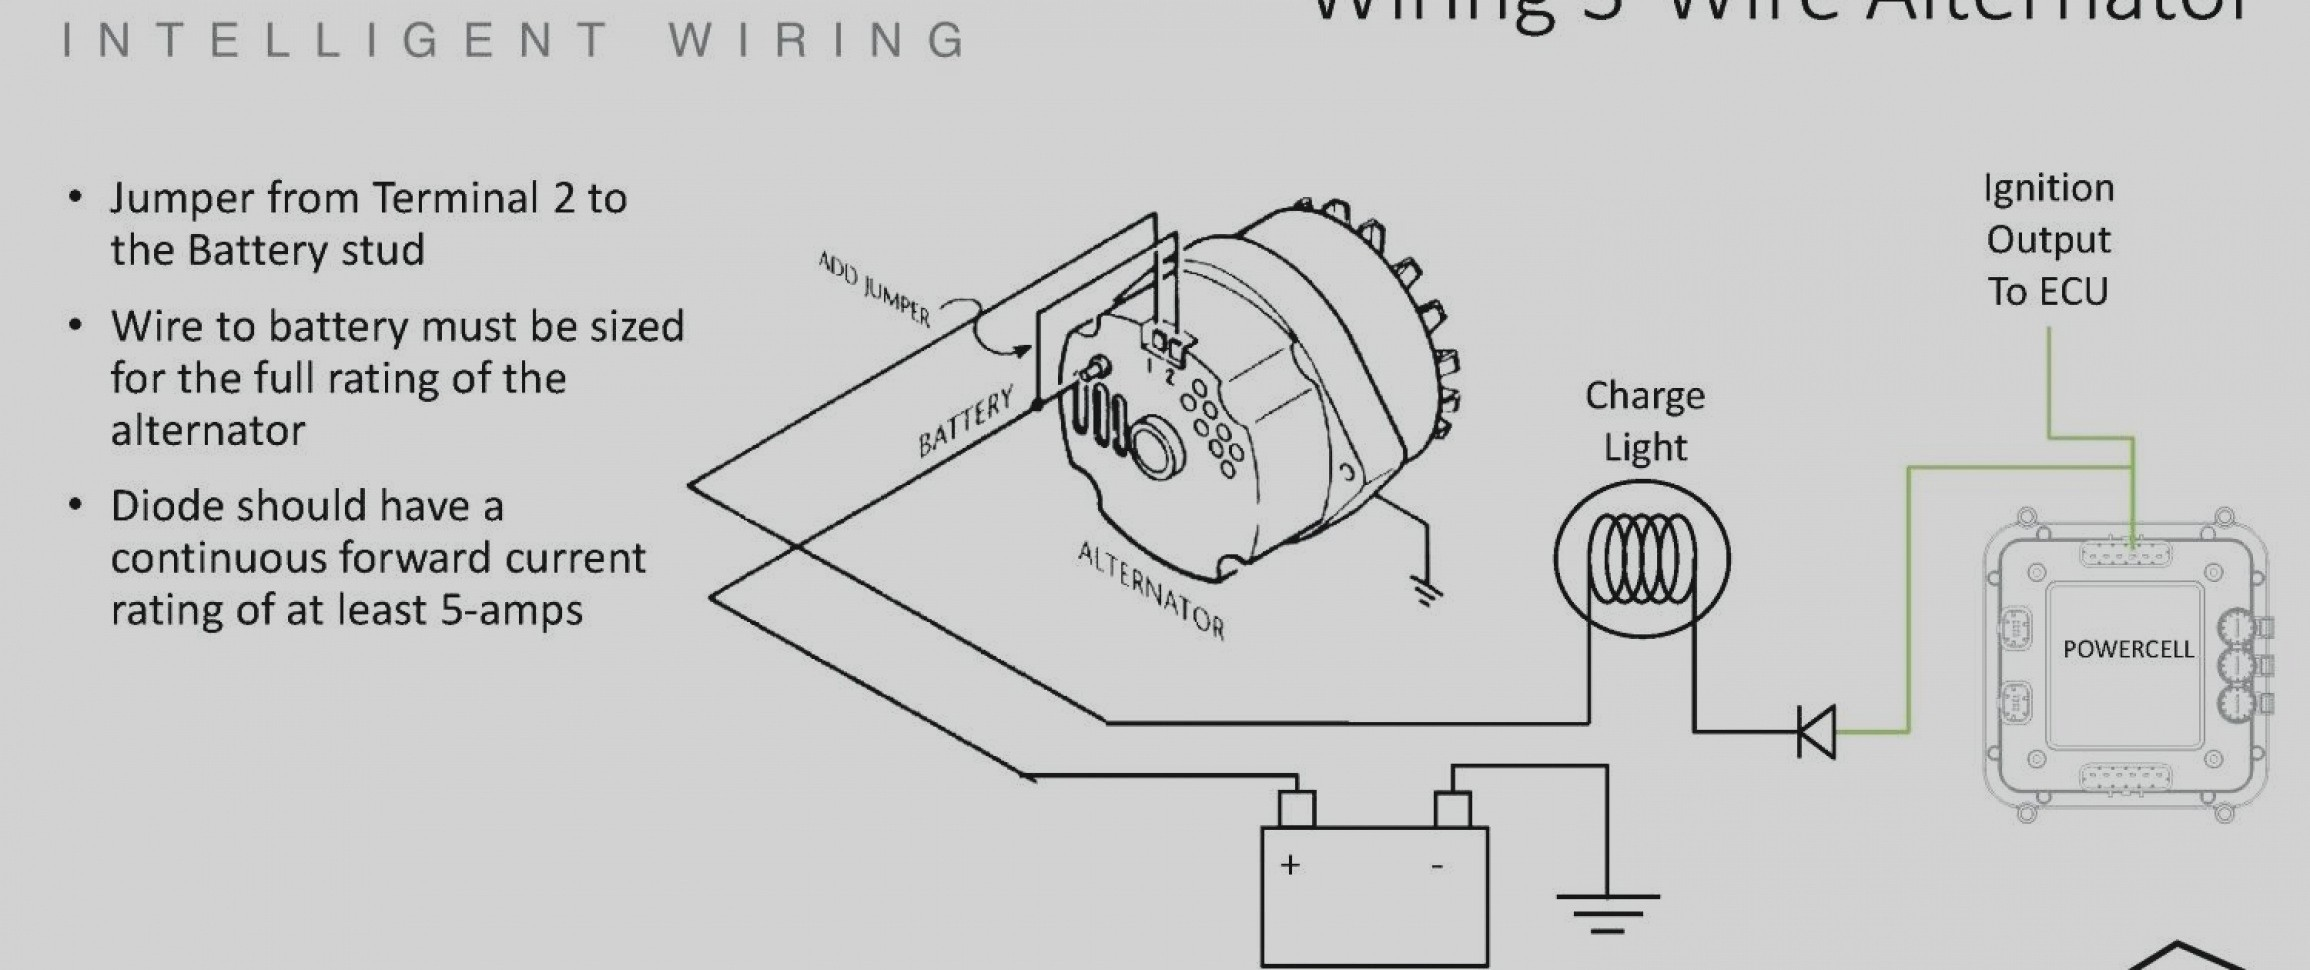 Alternator Wiring Diagram Internal Regulator Yj Alternator Wiring Archives Citruscyclecenter Of Alternator Wiring Diagram Internal Regulator